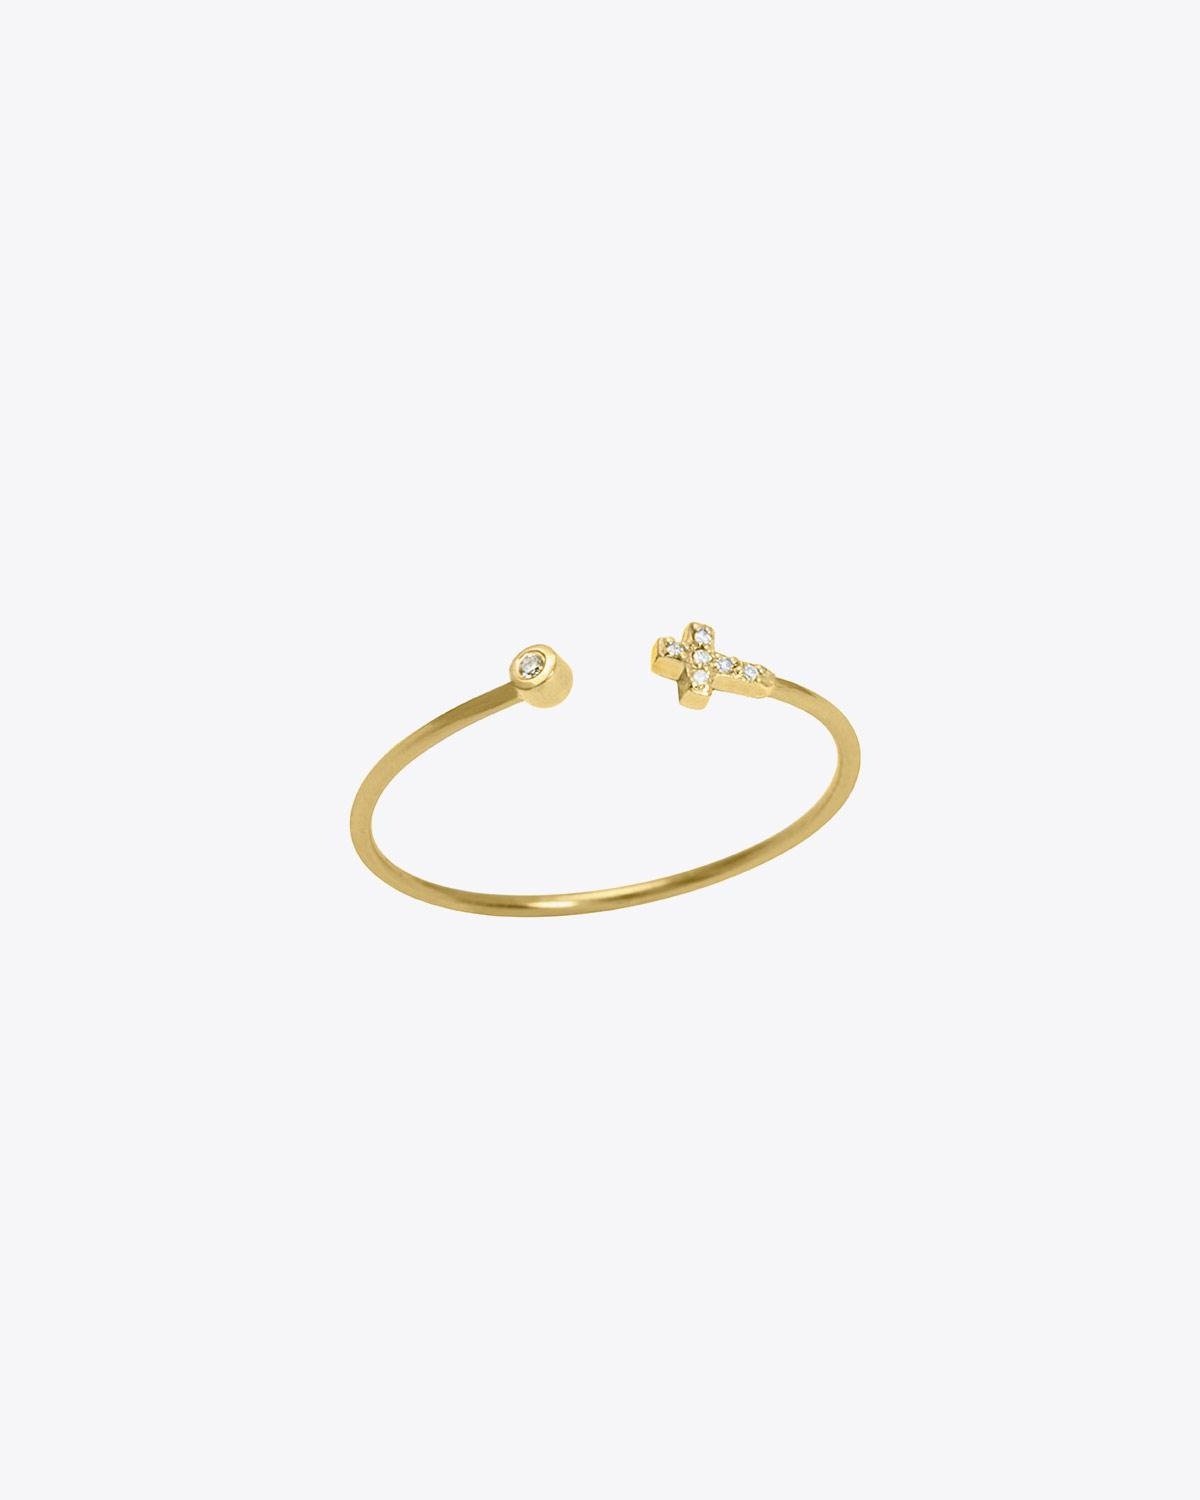 Feidt Bague croix ouverte In the Moon for love - Or jaune 18k, Diamants